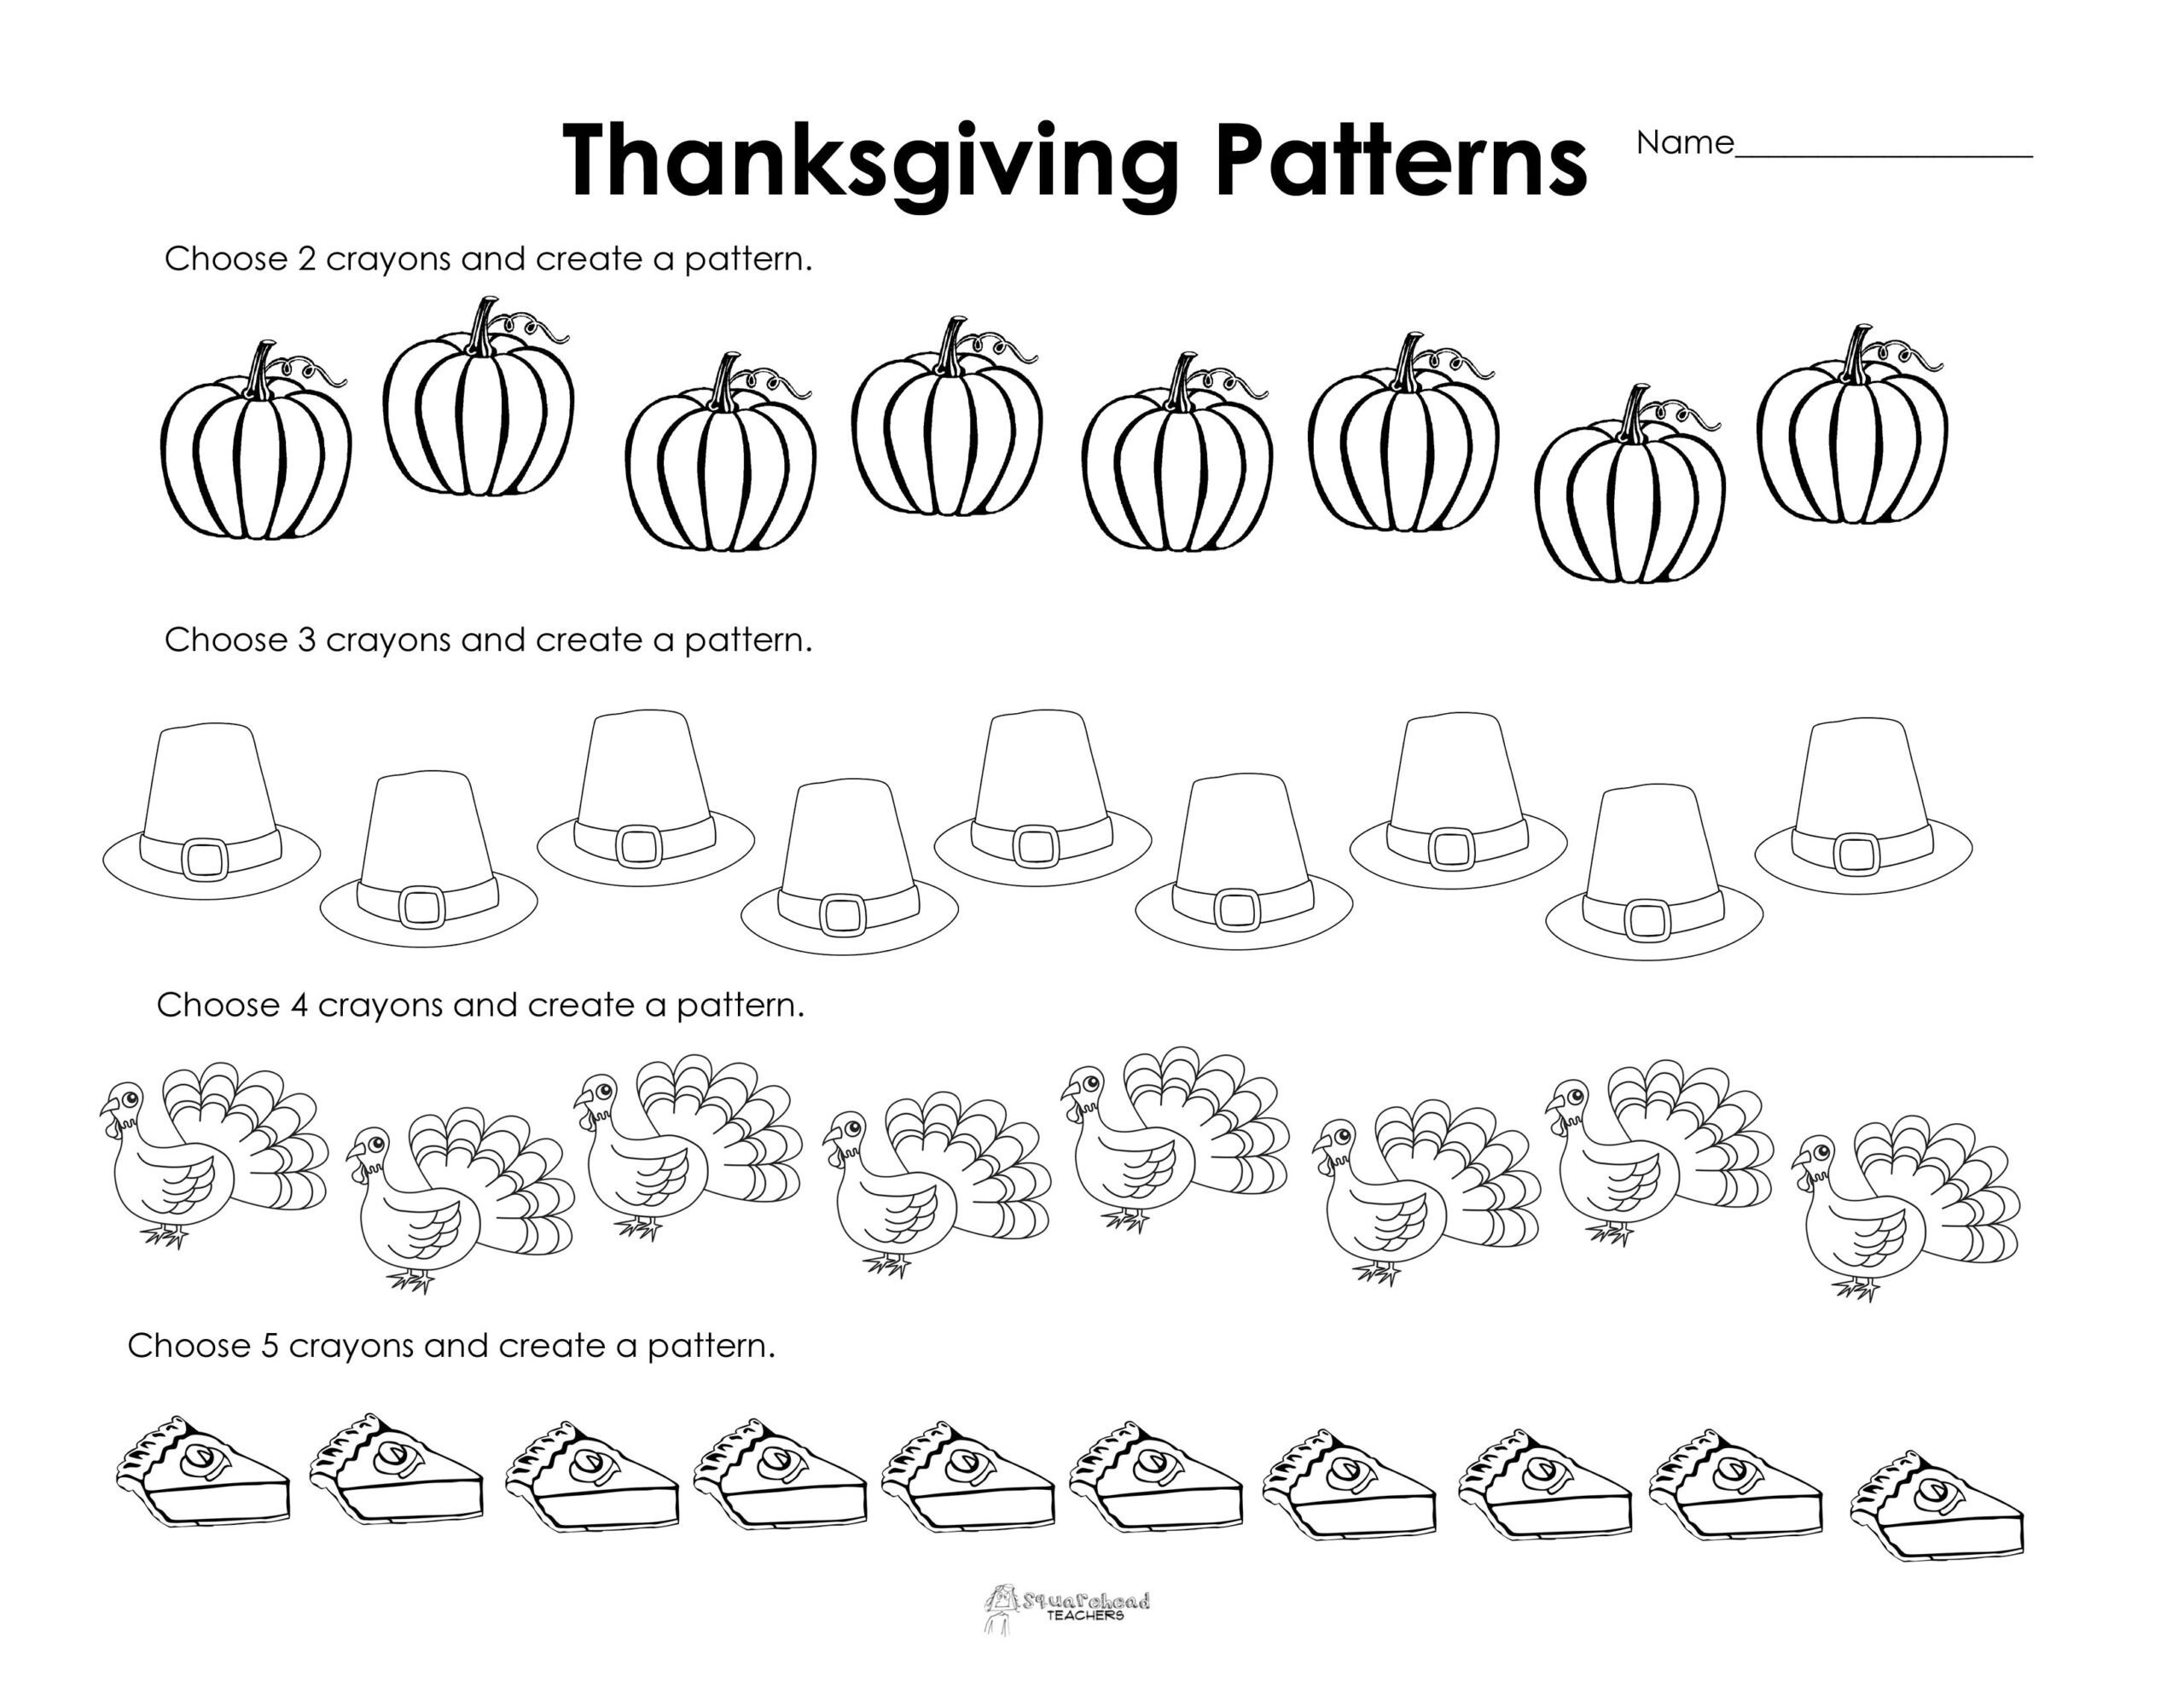 Thanksgiving Math Worksheets Kindergarten Making Patterns Thanksgiving Style Free Worksheet Worksheets